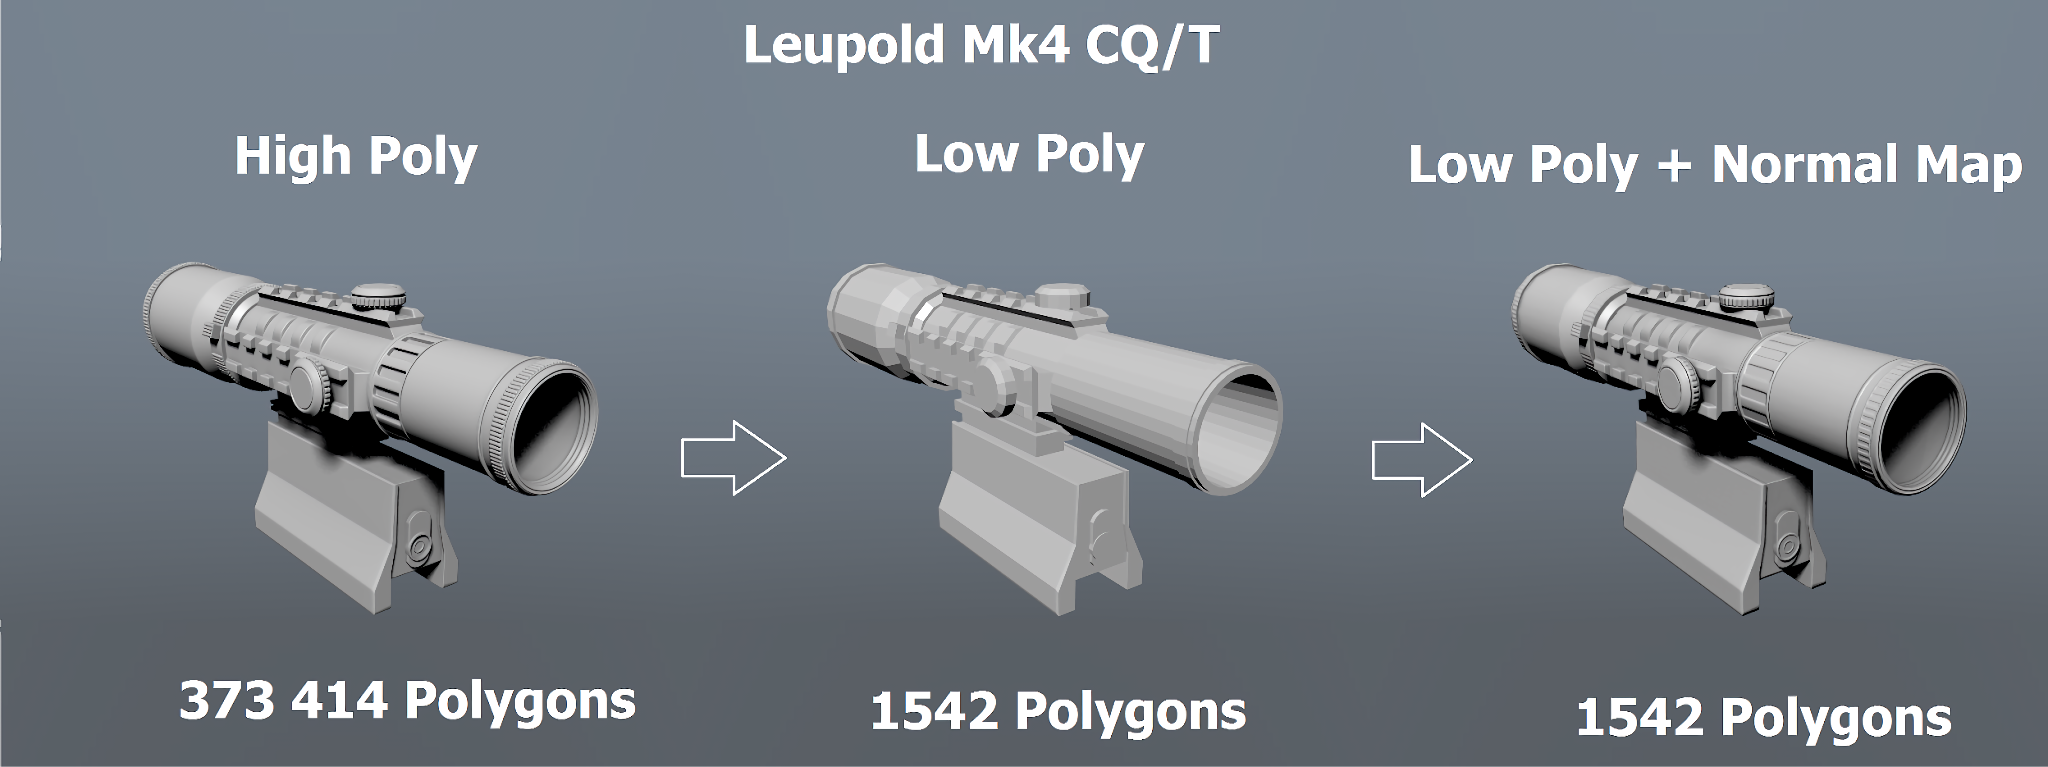 Adding Normal Map to a Leupold Mk4 CQ/T model